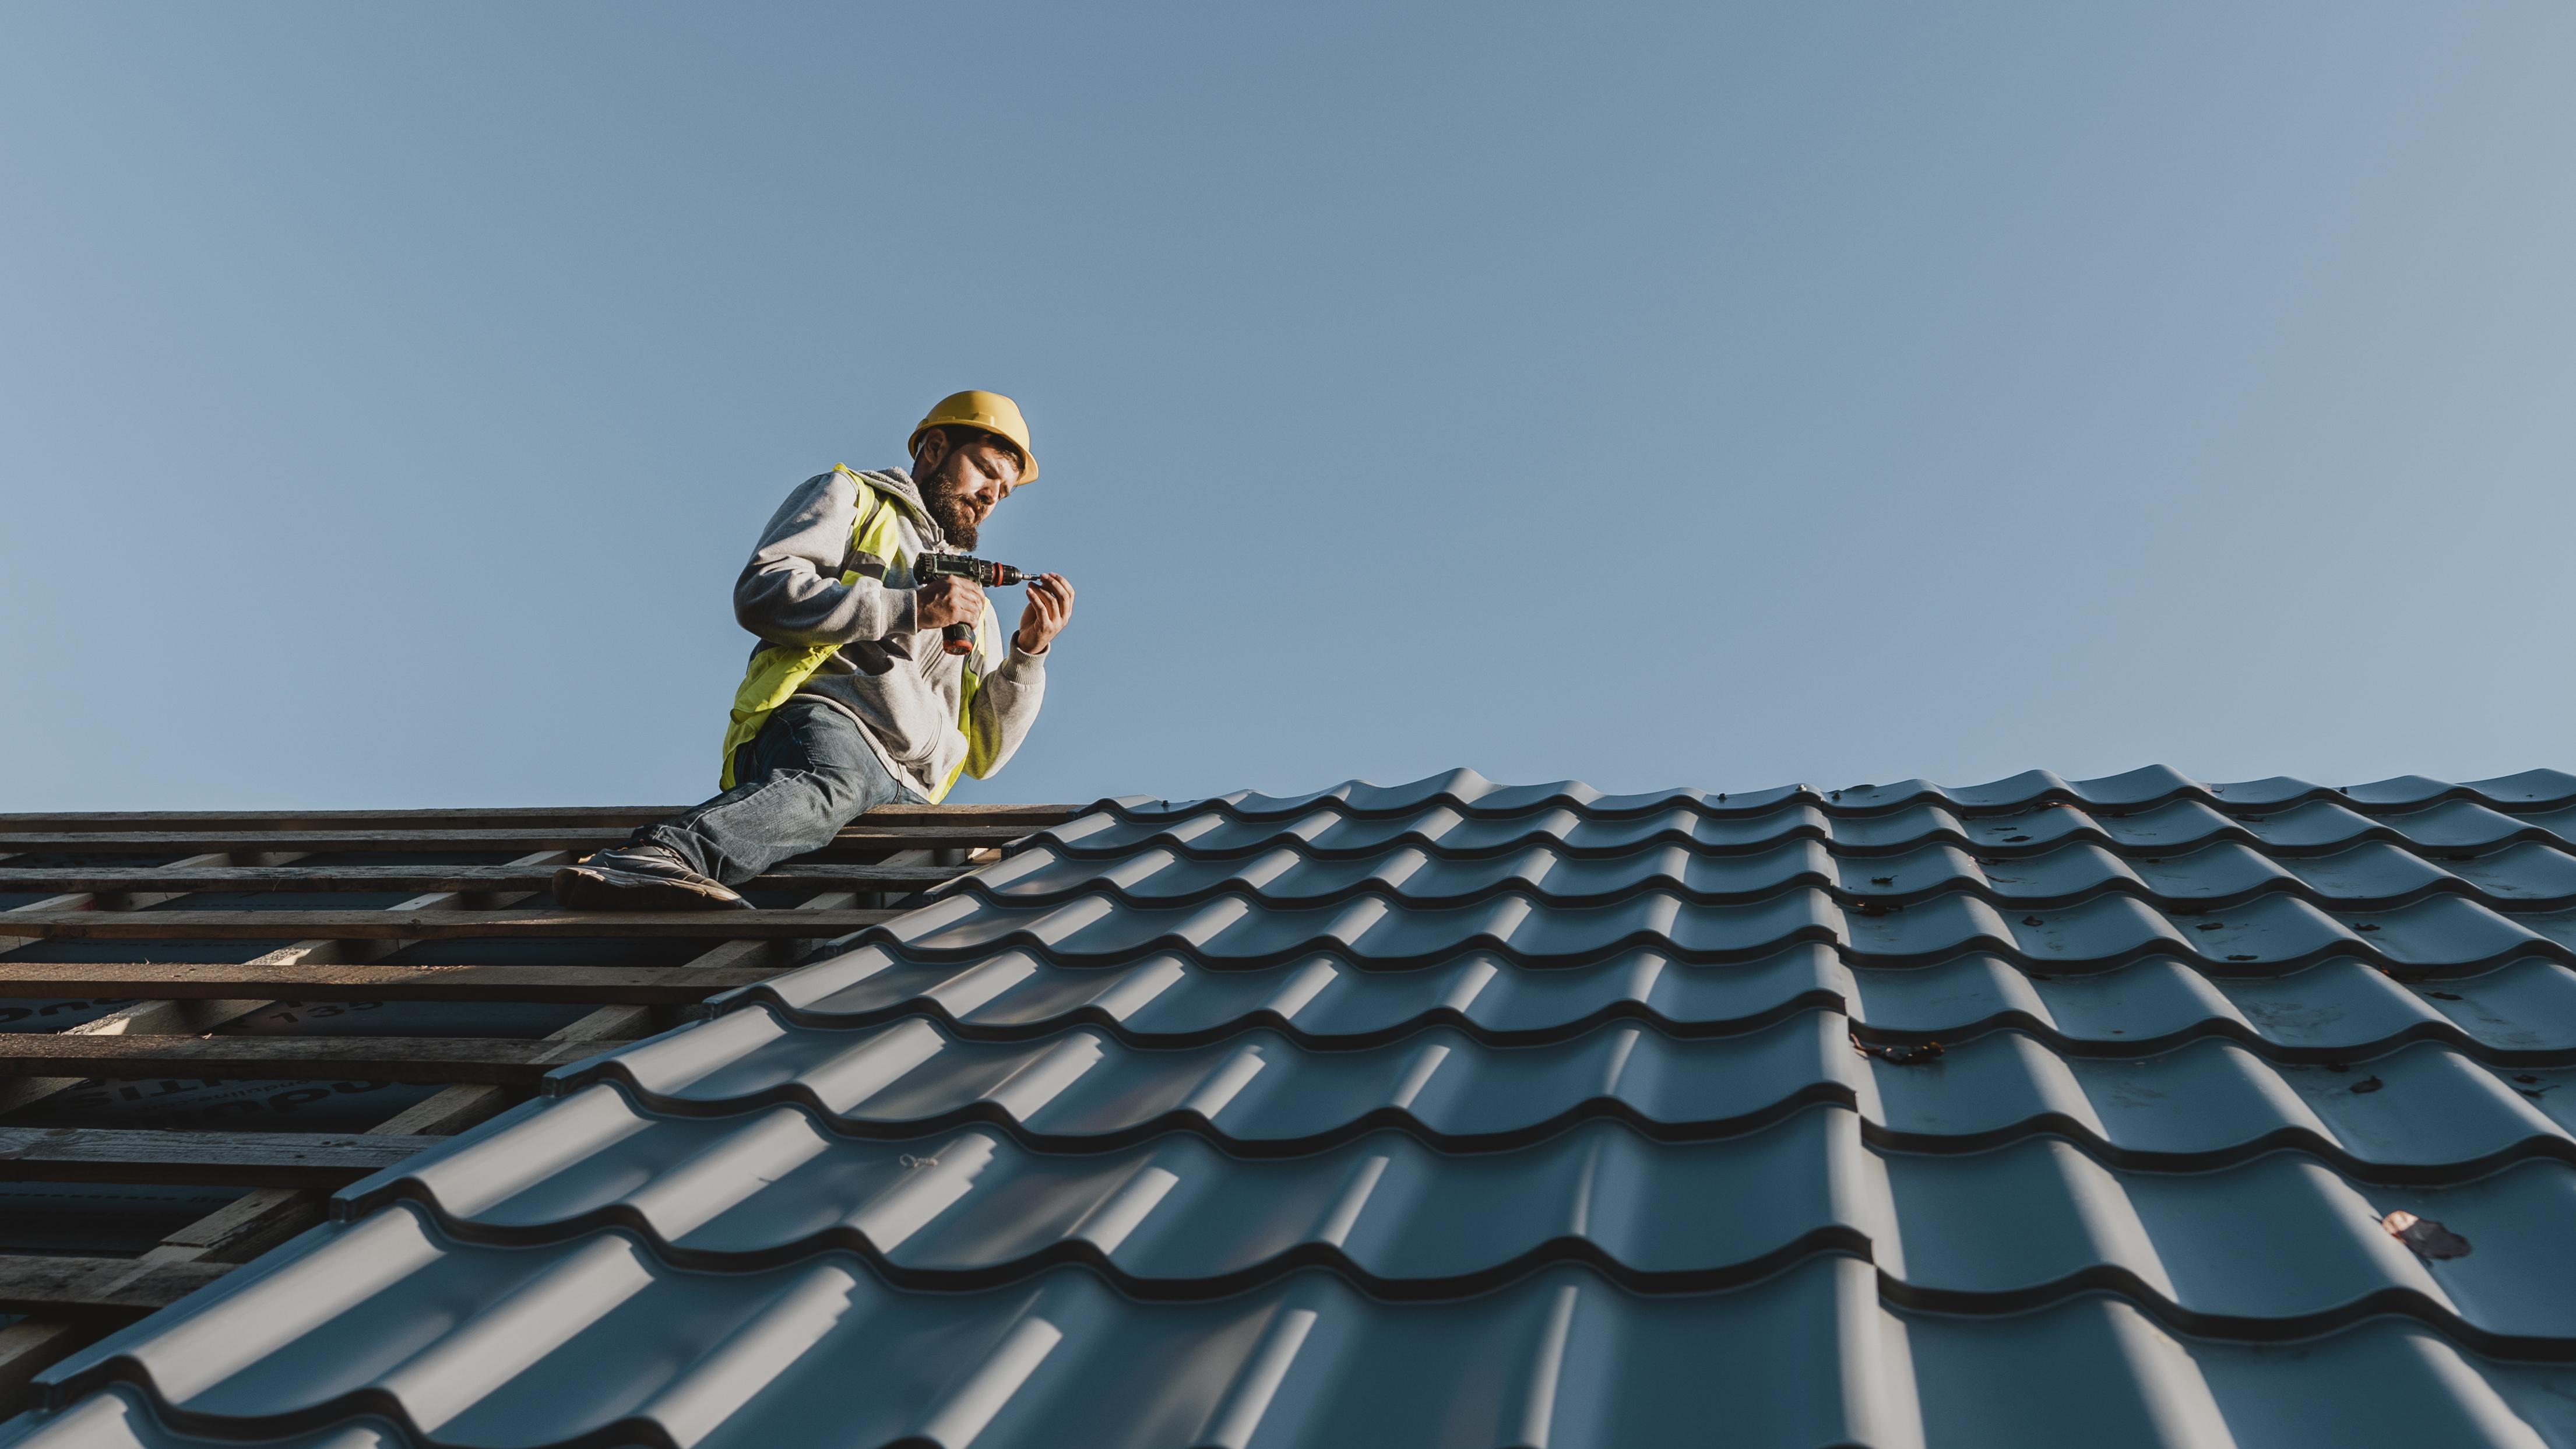 Worker getting ready to install solar panels - solar installation company business loan